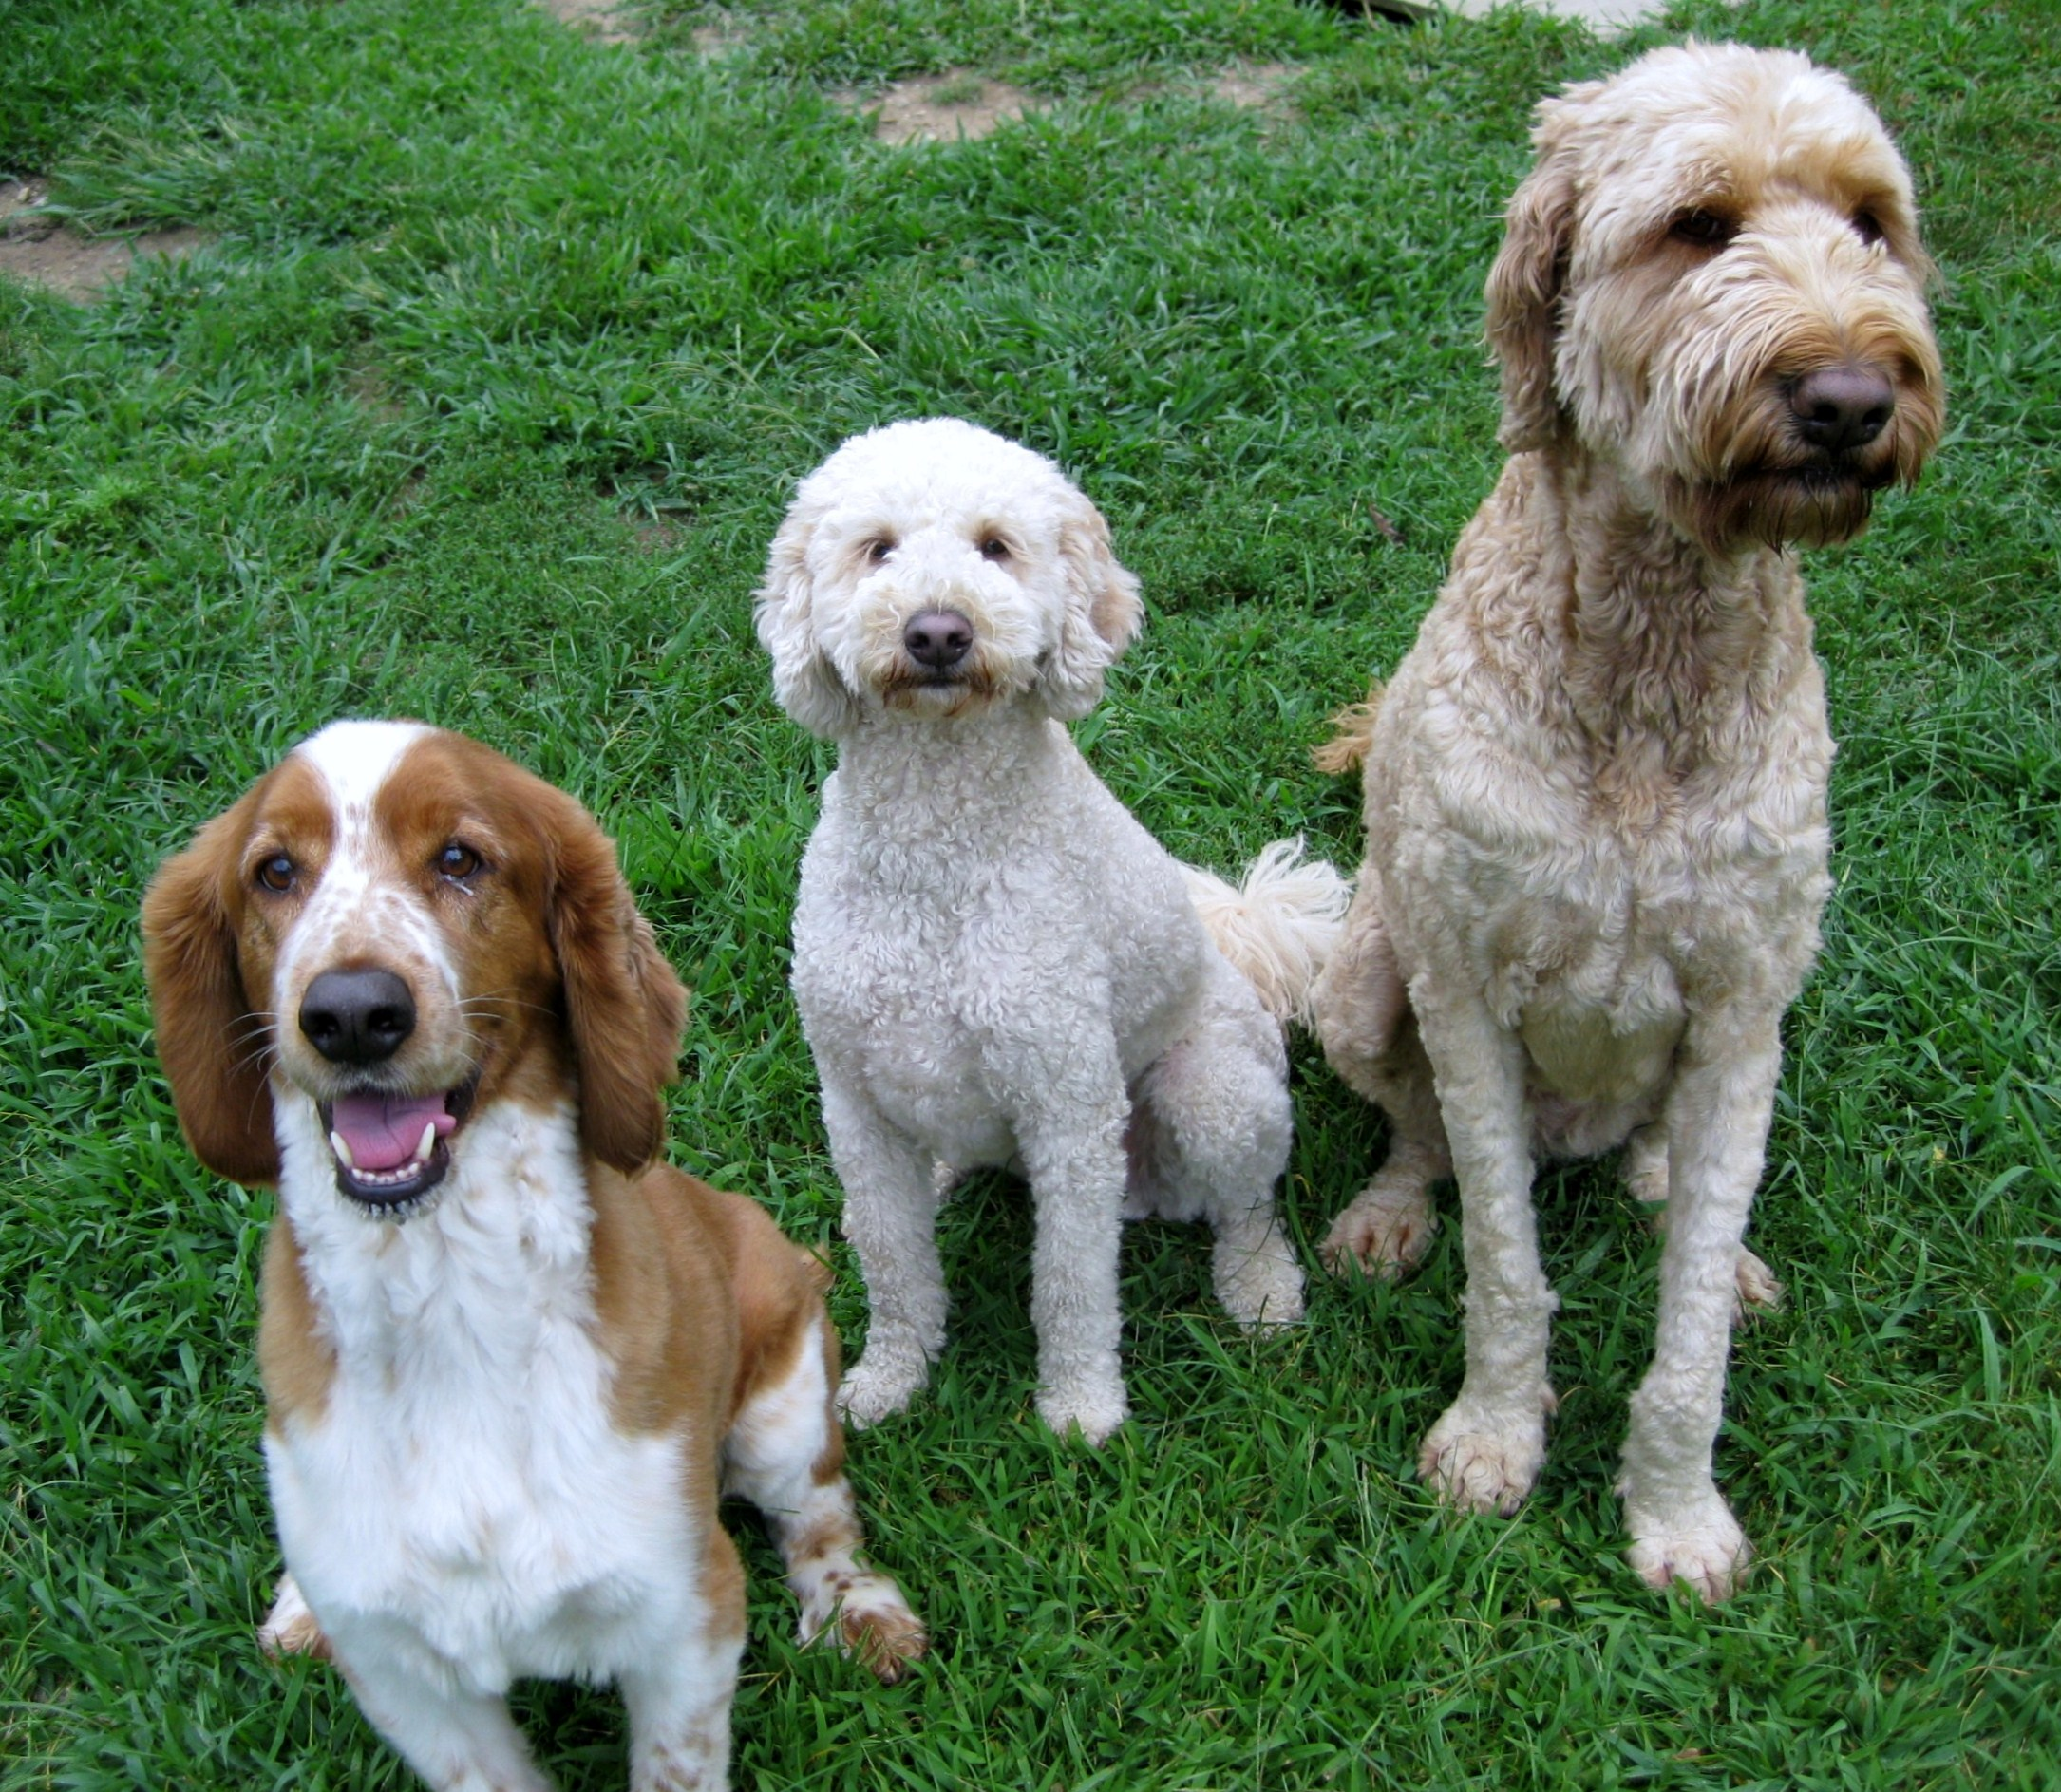 Introducing A Third Dog Into Your Home? Follow These Six Tips For Success!